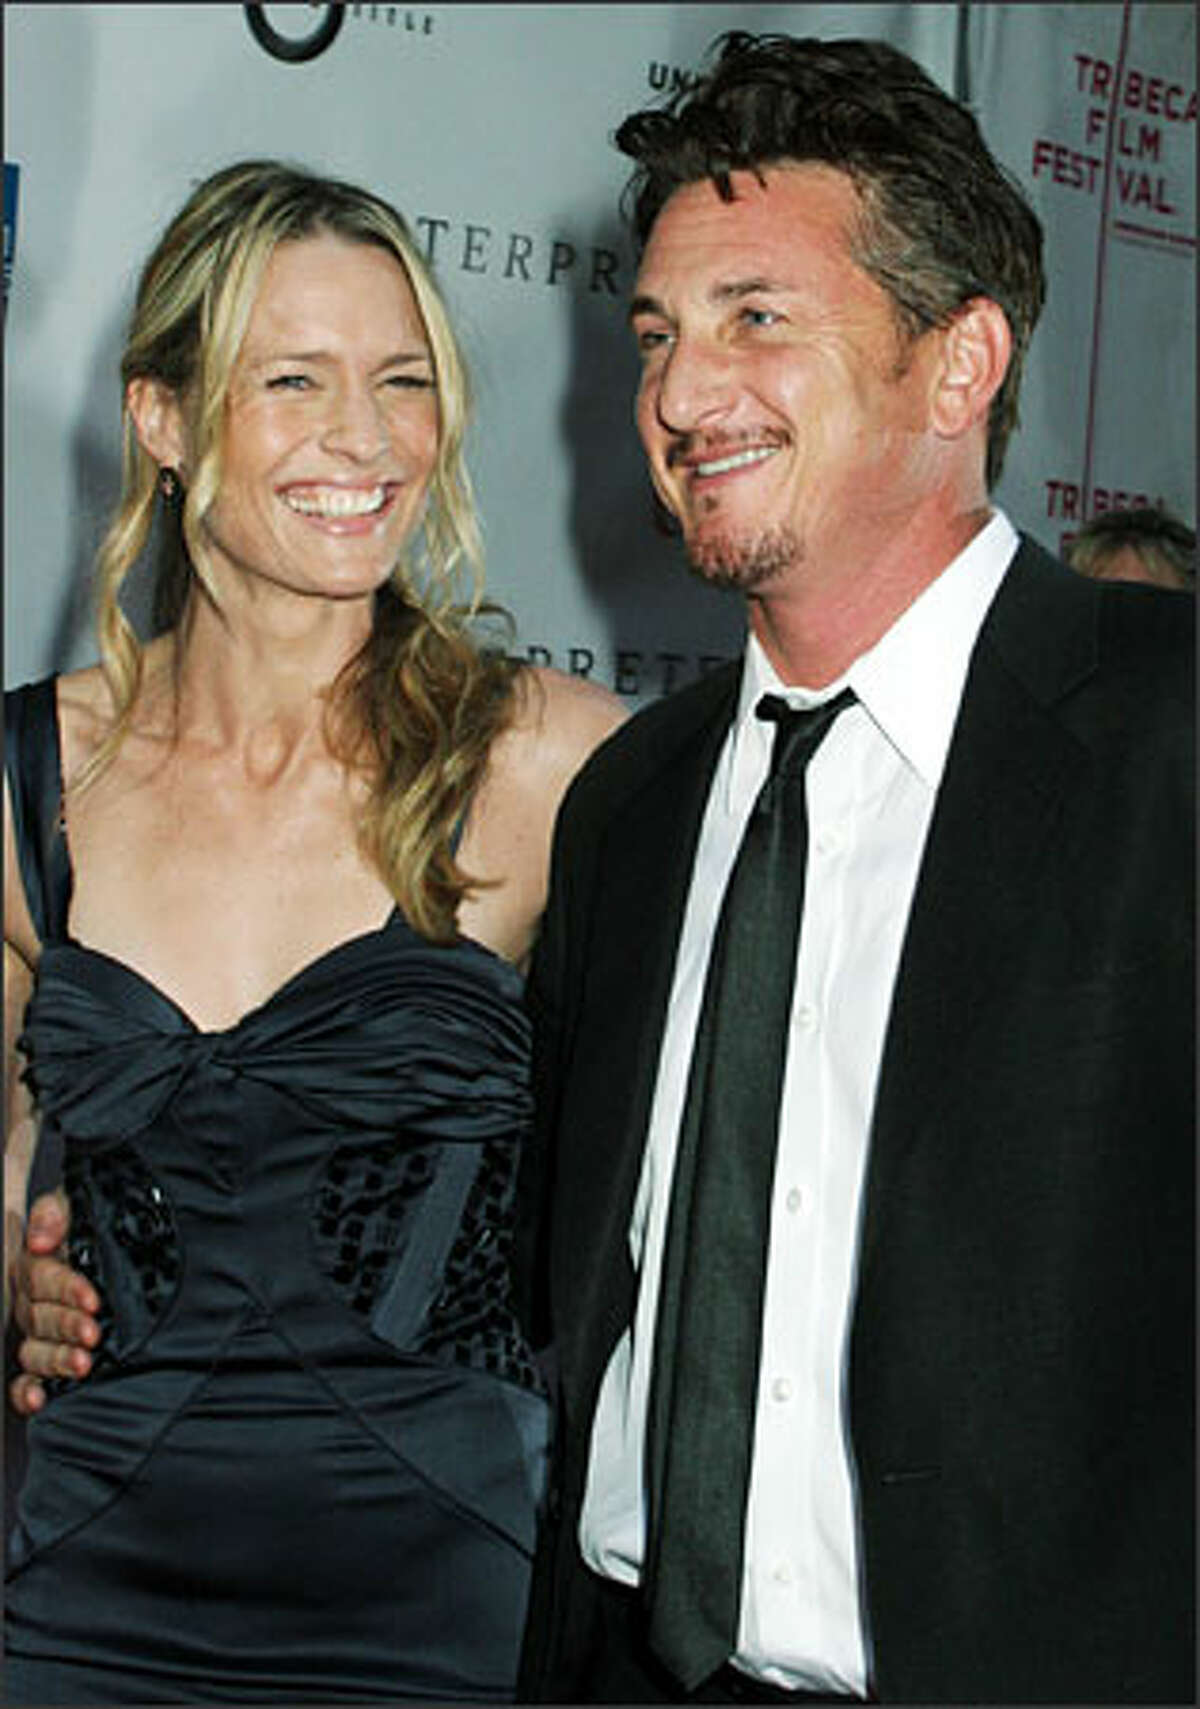 Sean Penn, looking amazingly cheerful, and wife Robin Wright Penn arrive for the premiere of his new film,